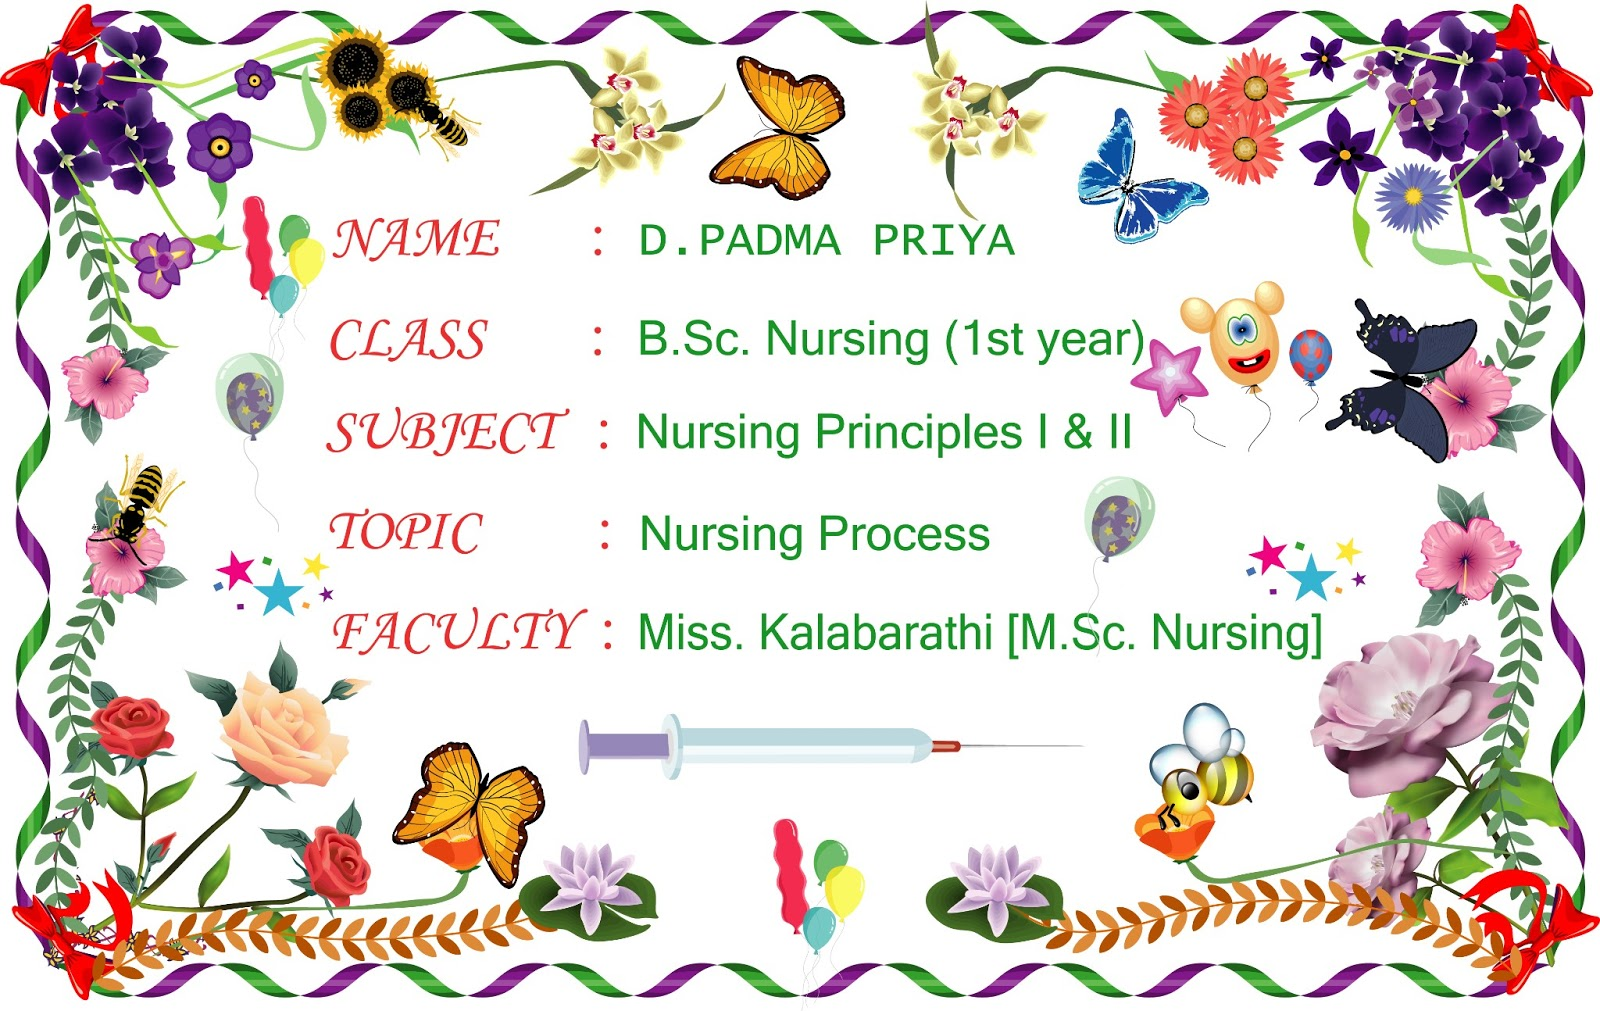 natrajan s creative workz a front page design for project report designed for nursing student this design was made using illustrator symbols